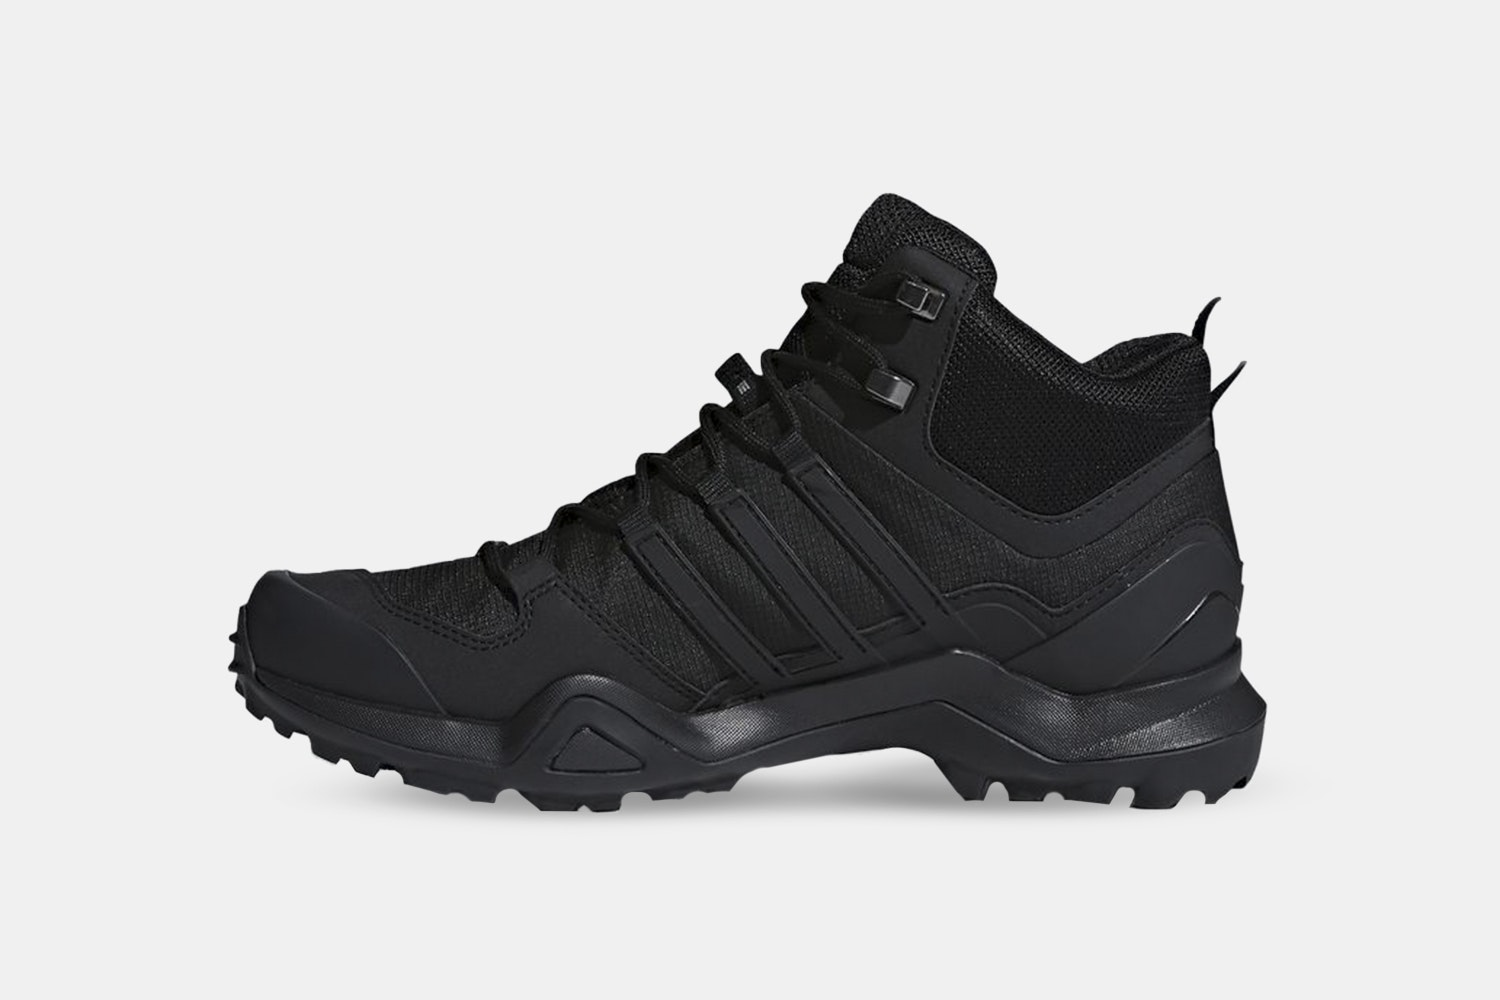 adidas trekking shoes women